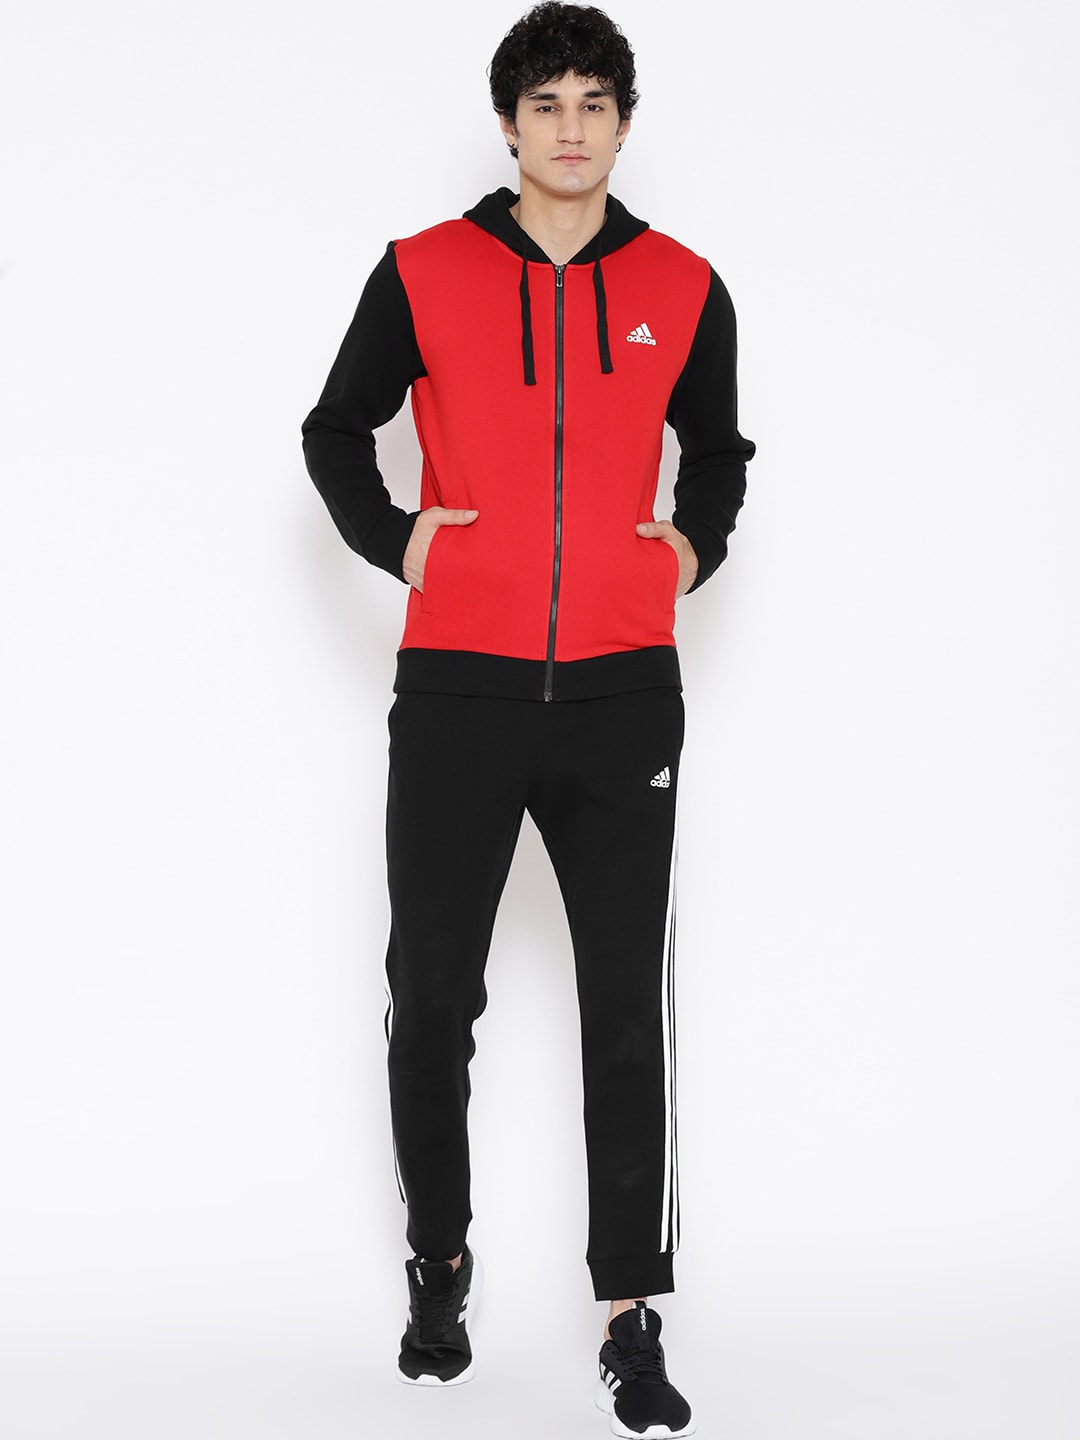 d56f2b17da50 Adidas Tracksuits - Buy Adidas Tracksuits Online in India